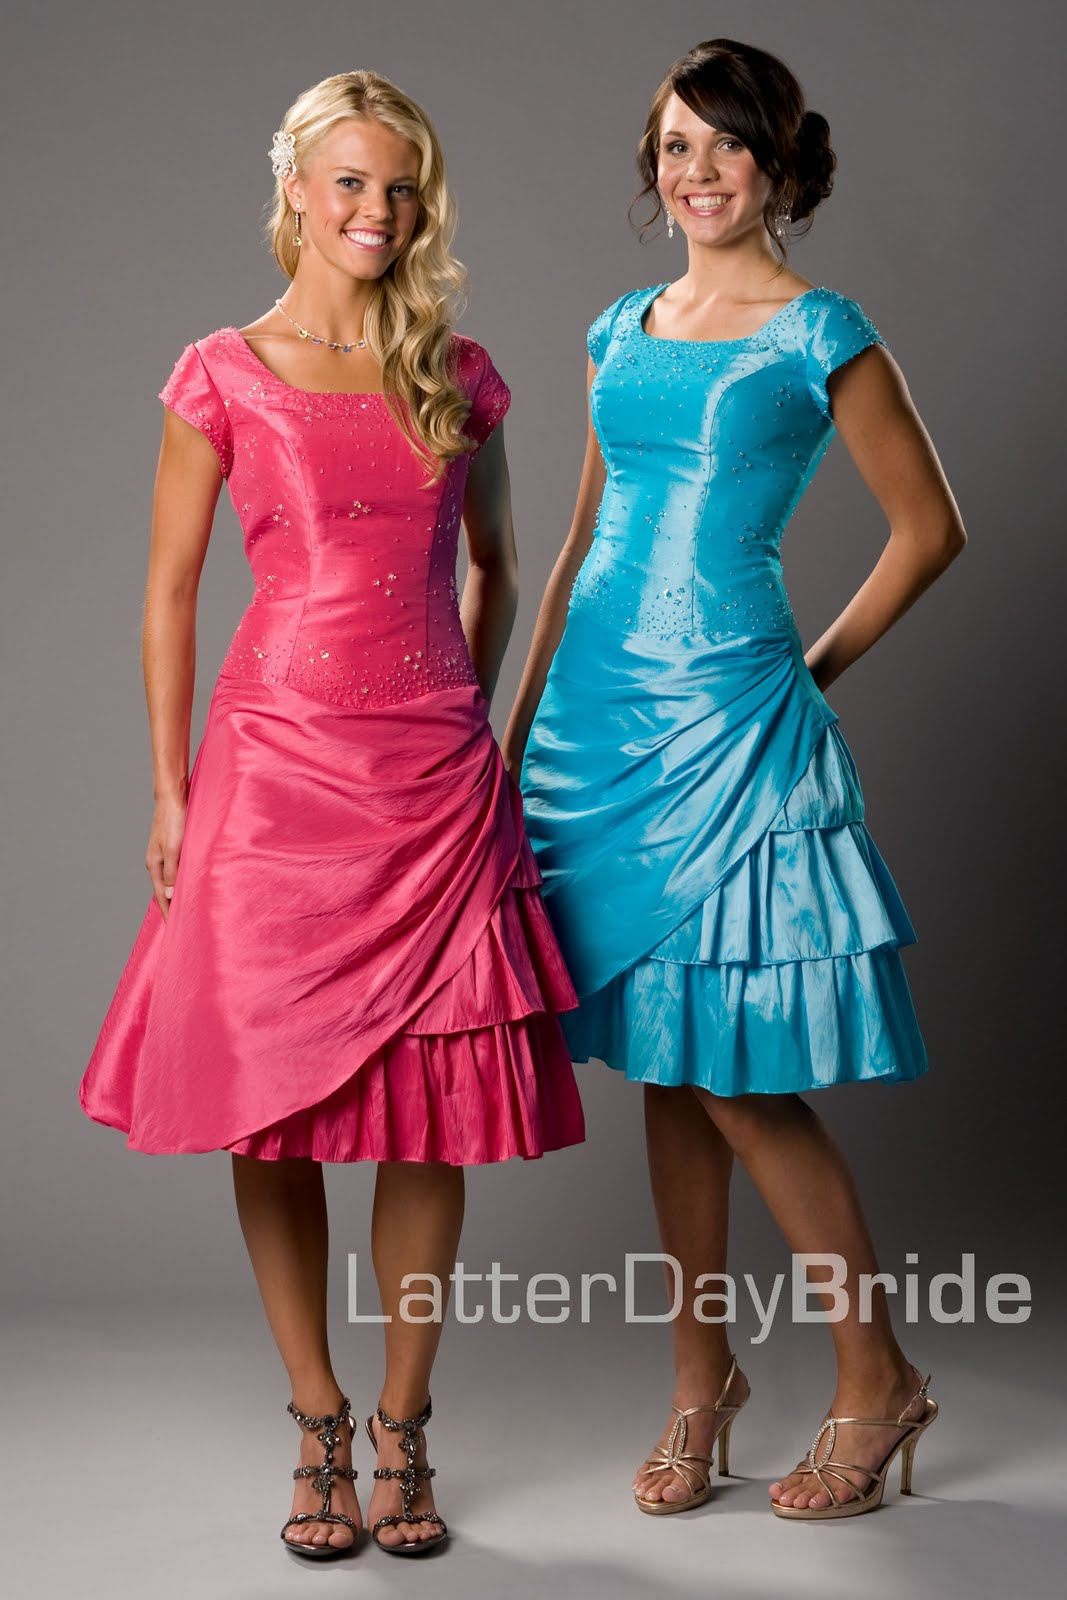 Mod Style Lounge: Pretty in a Prom Dress!